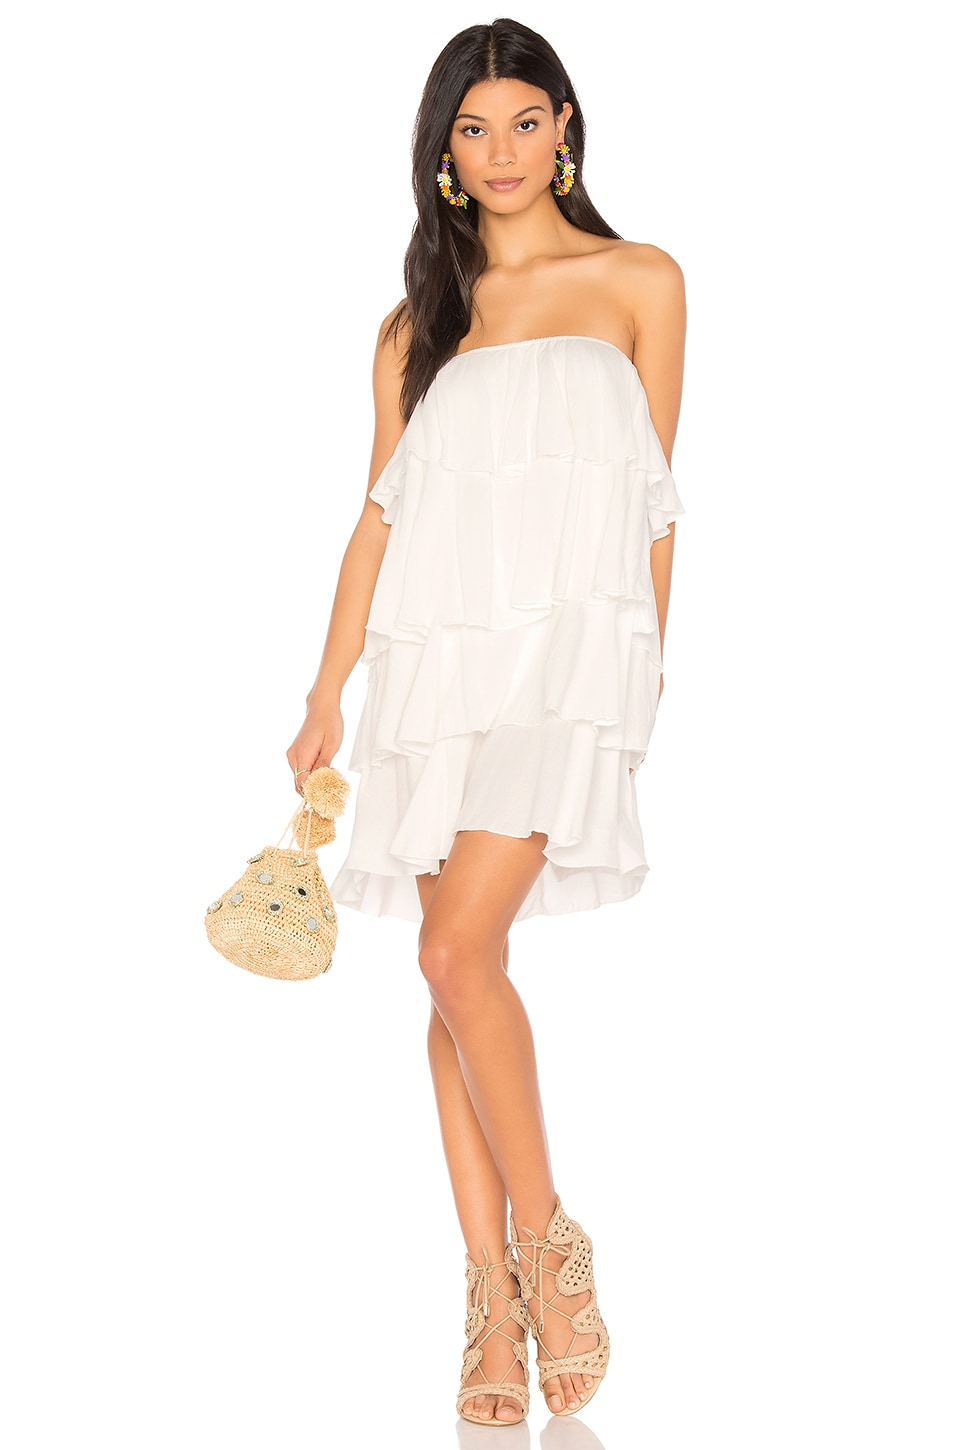 De Lacy Rio Dress in White